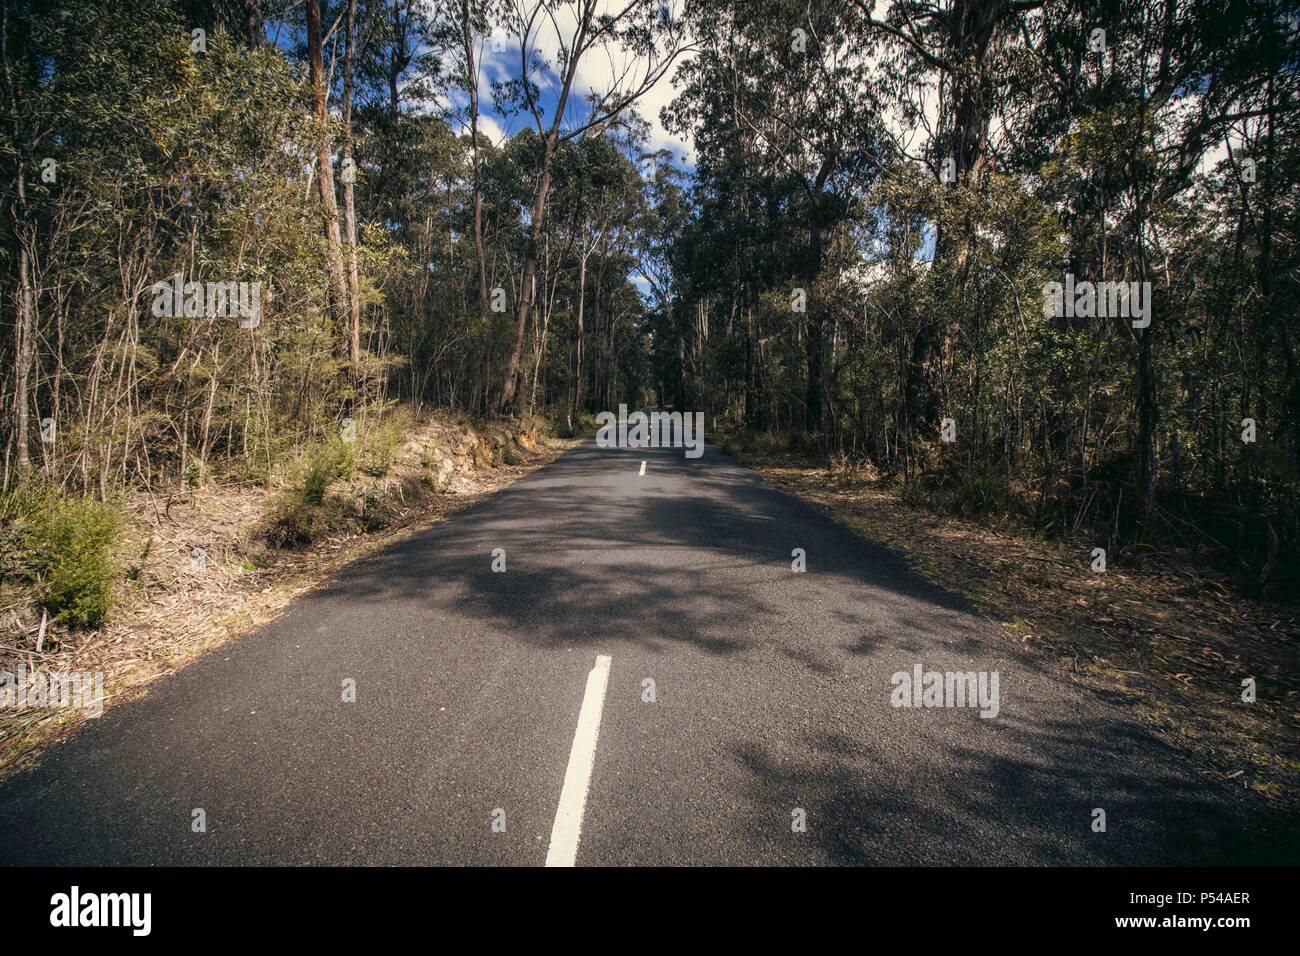 Long Straight Vanishing Point Road in Megalong Valley, NSW, Australia - Stock Image